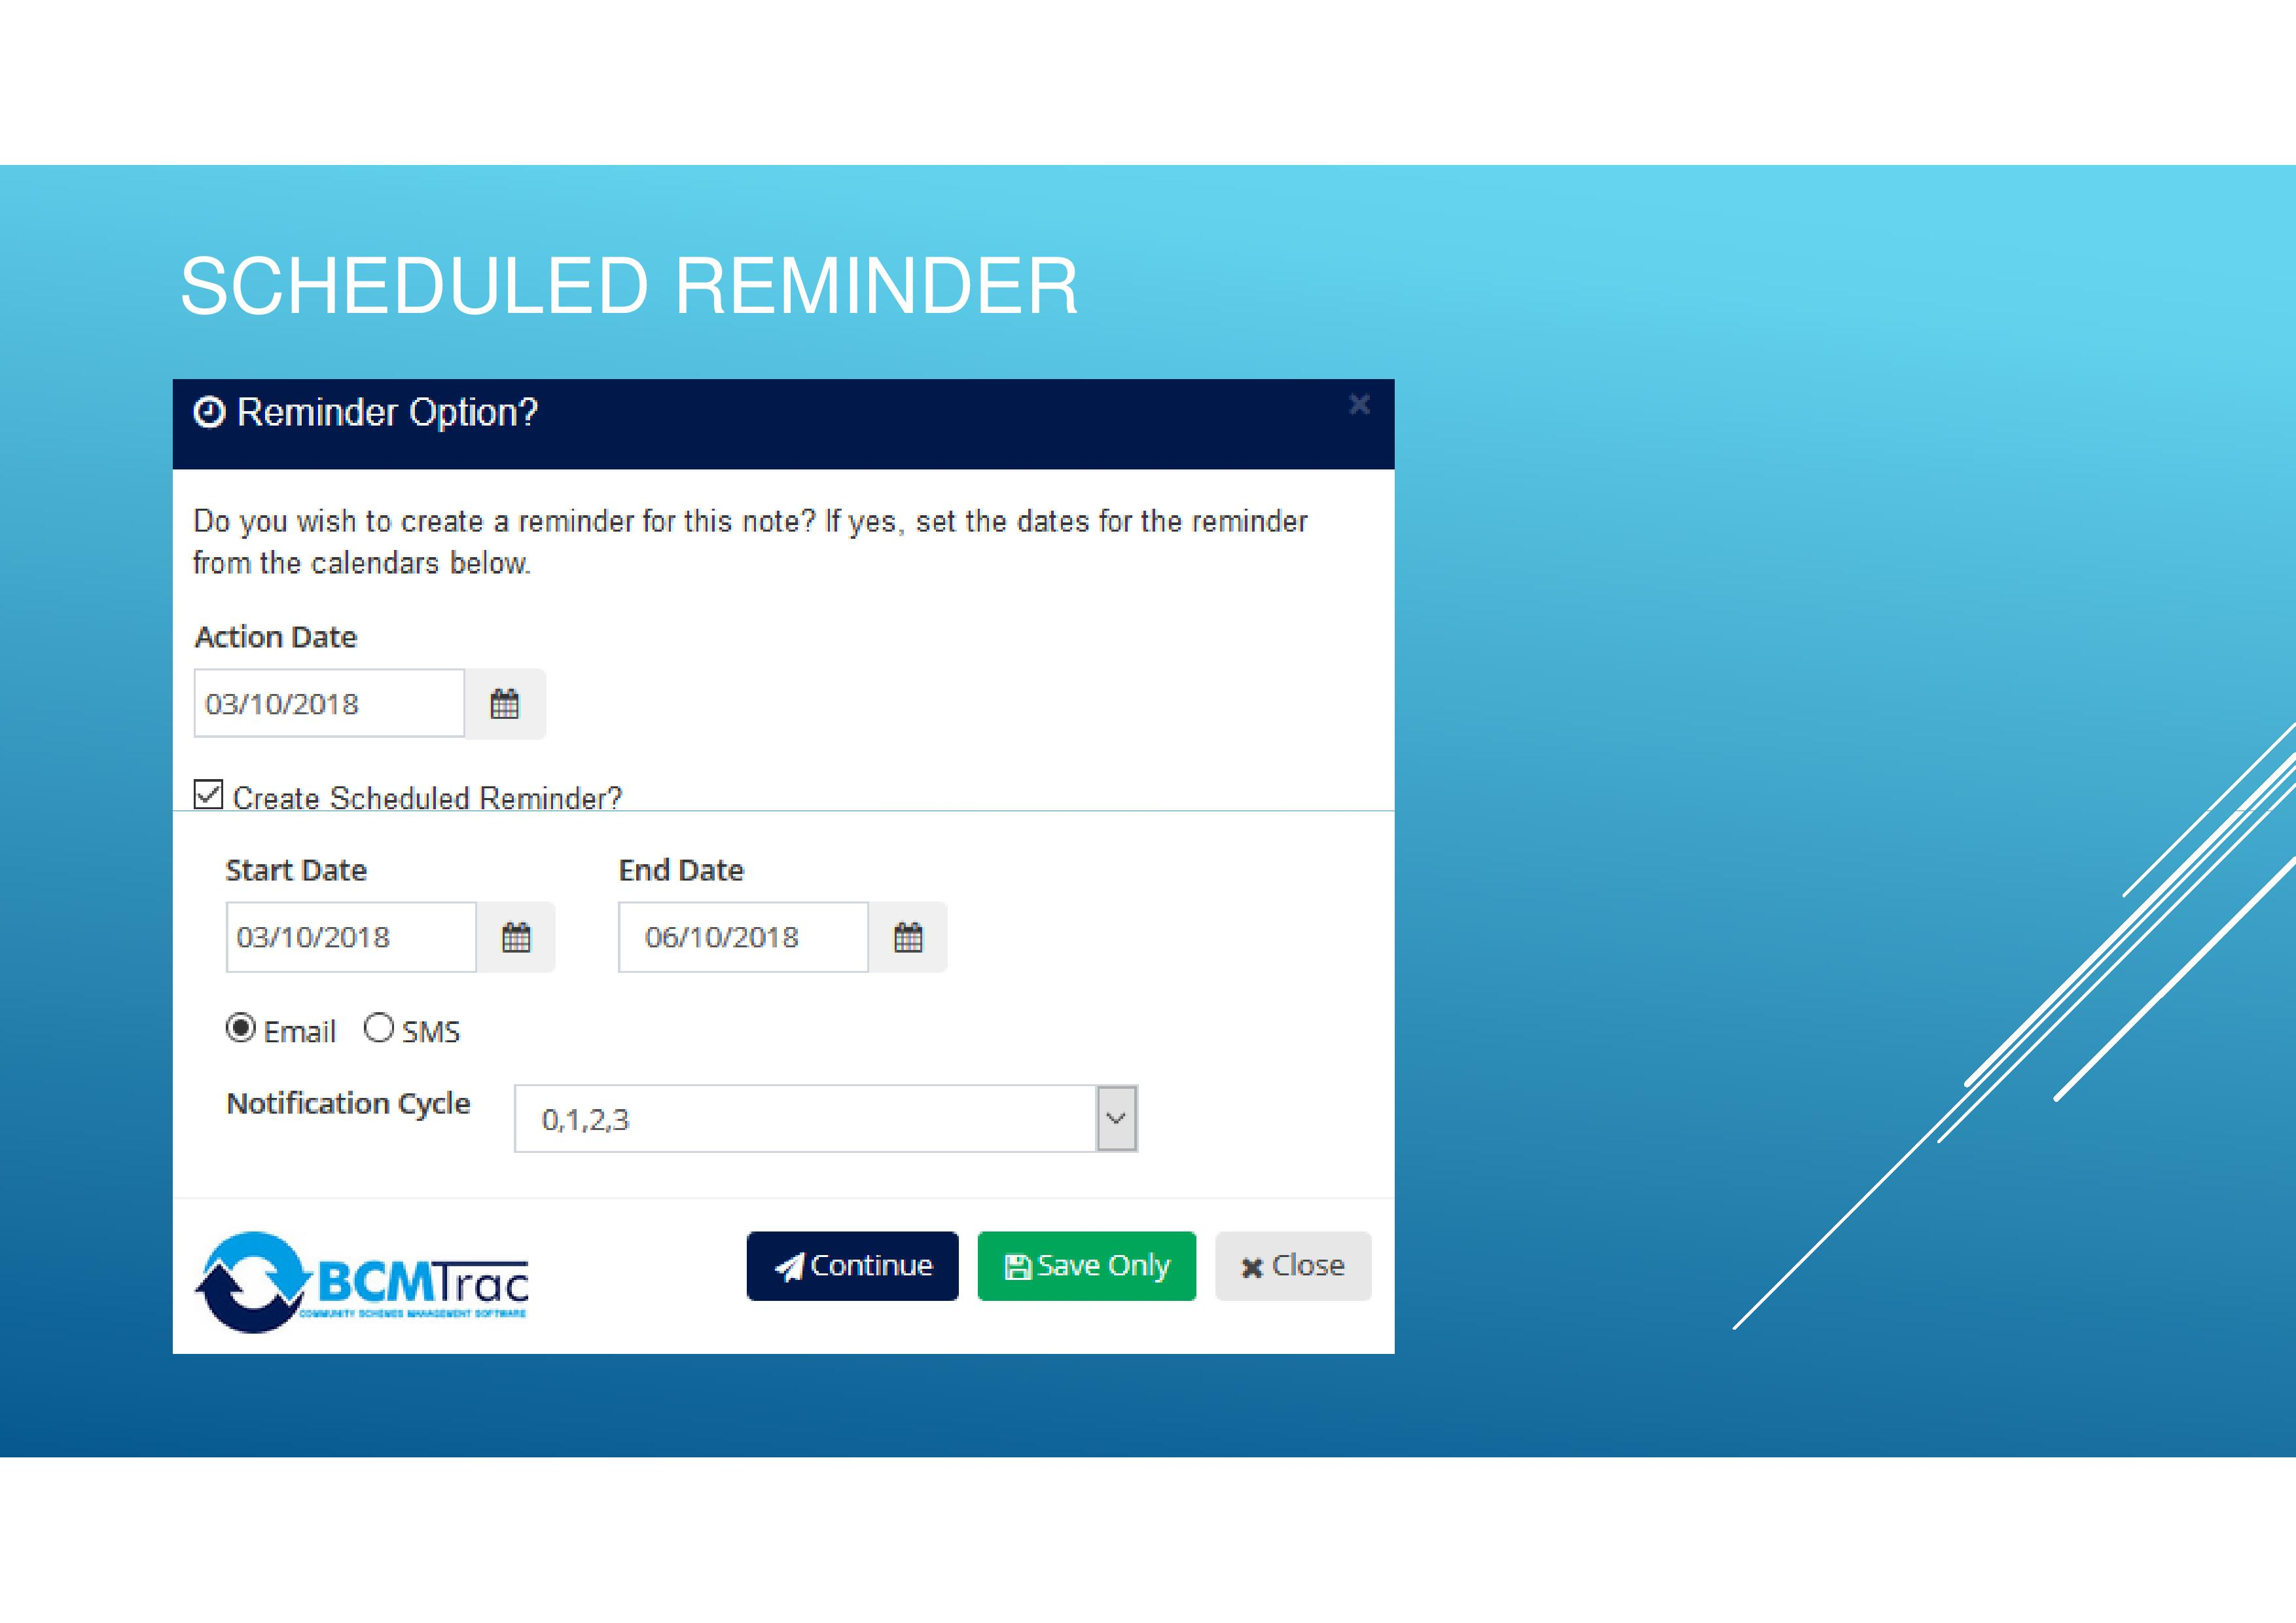 Choose to create scheduled task reminders and receive notifications via email or sms